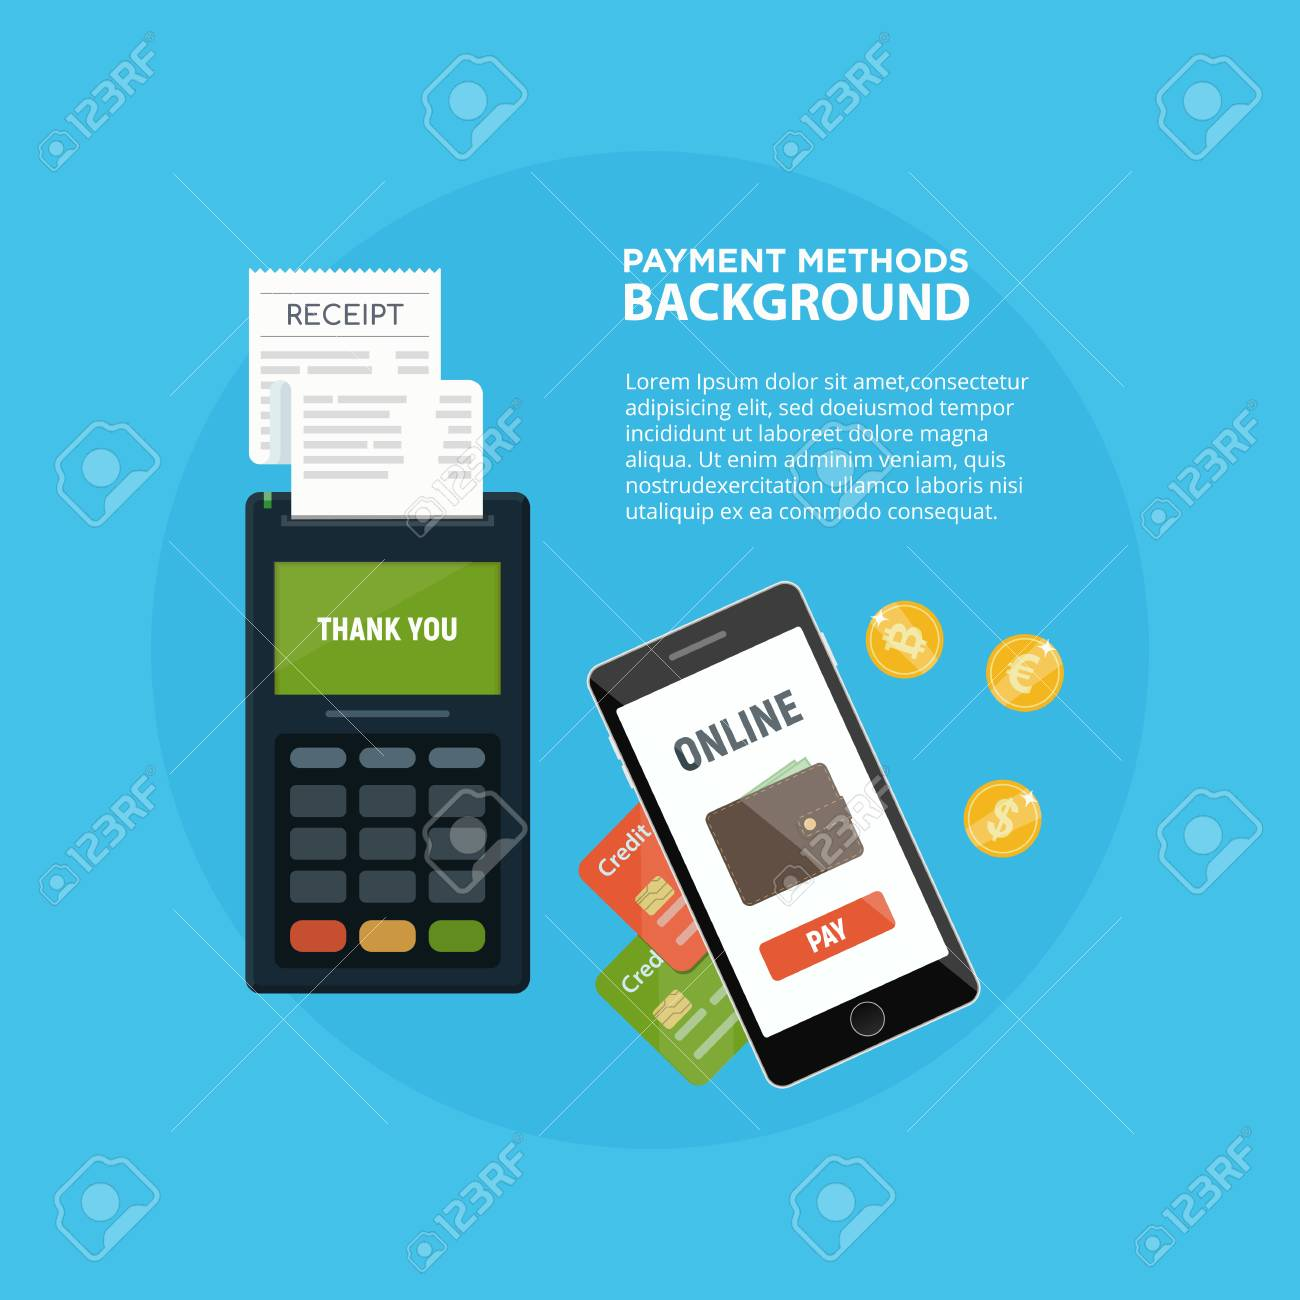 Methods payment concept  POS terminal confirm the payment  NFC